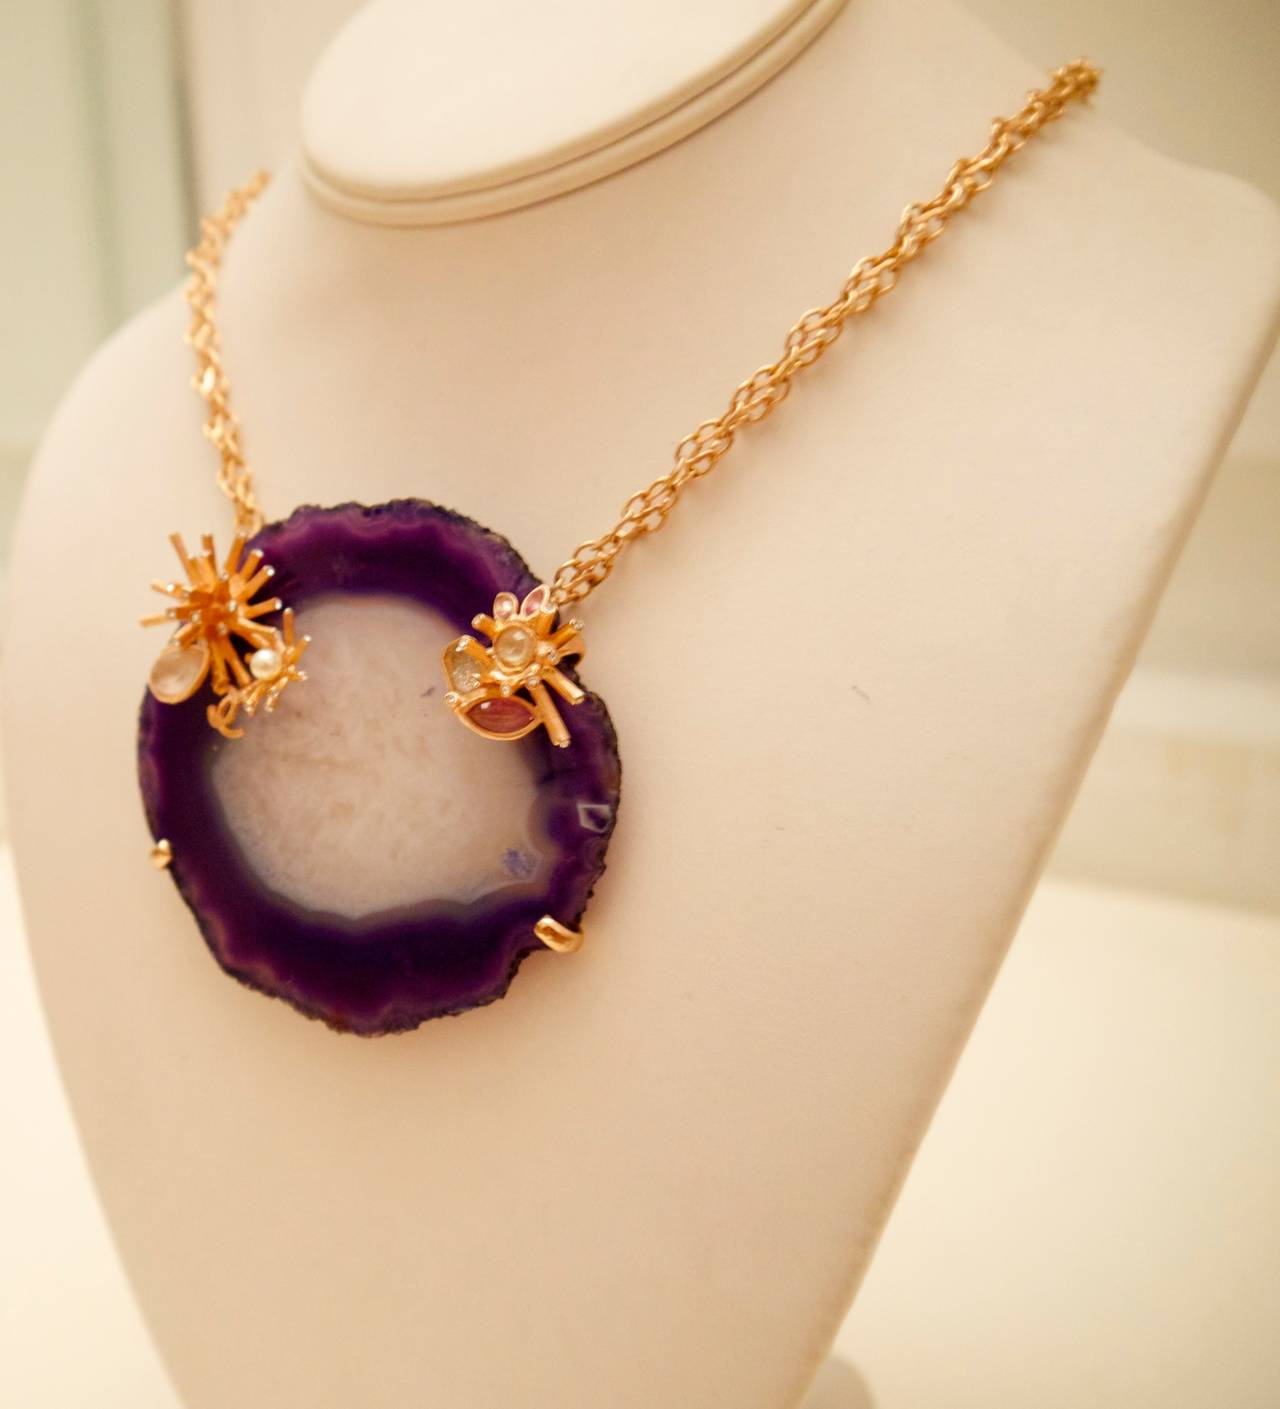 Chanel Purple and White Agate Cross Section Couture Necklace 3